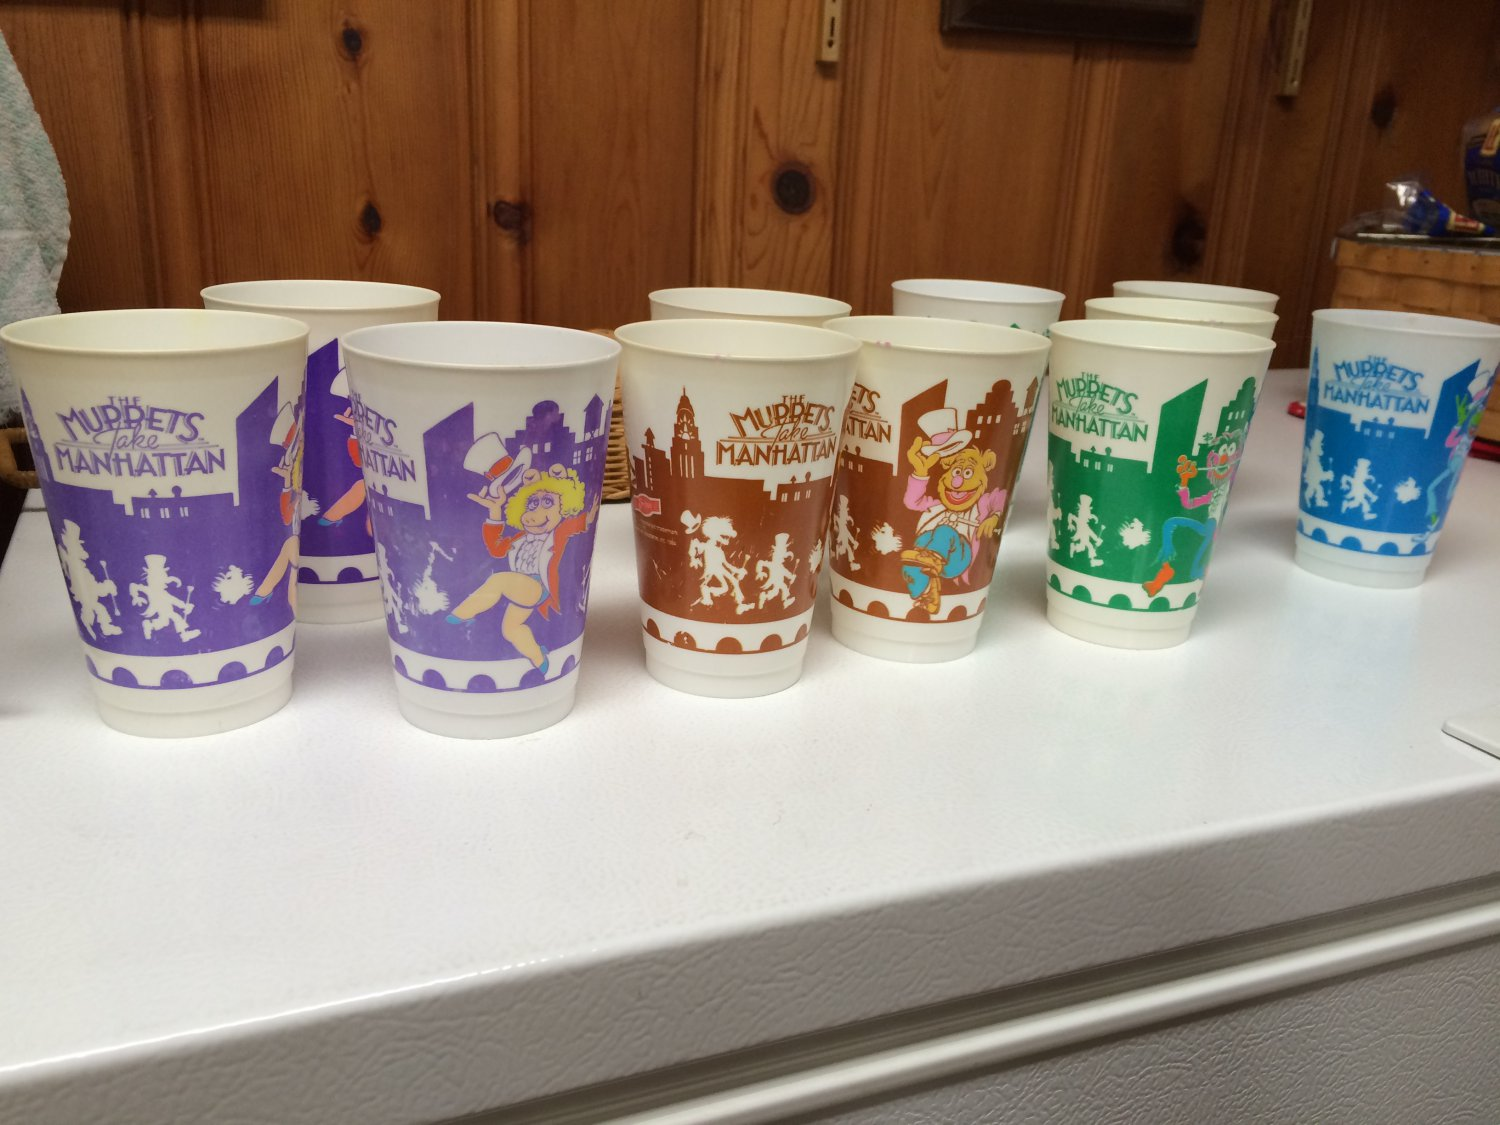 17 - The Muppets take Manhattan Plastic Cups Glasses - 1984